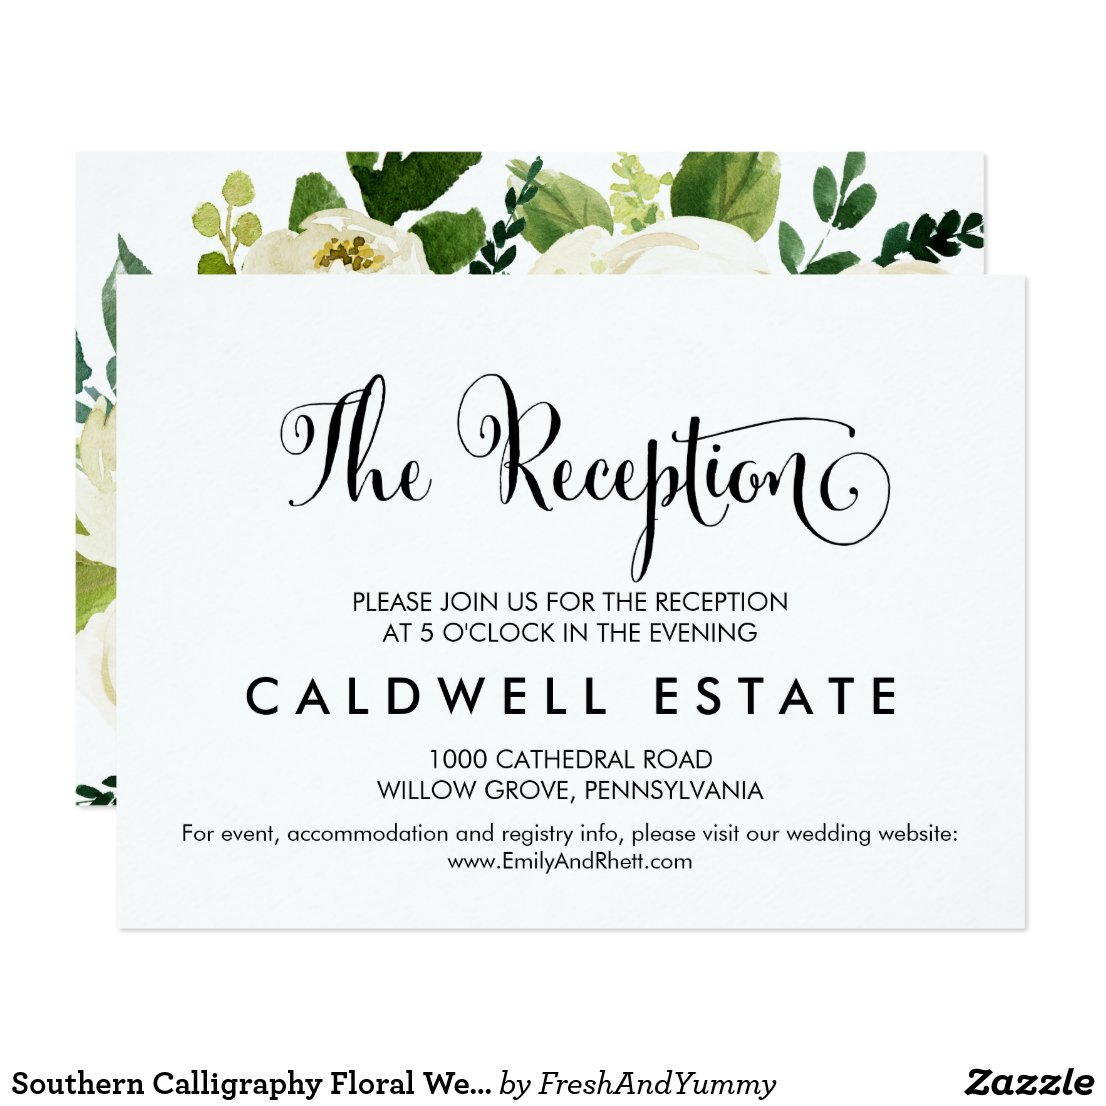 Southern Calligraphy | Floral Wedding Reception Card